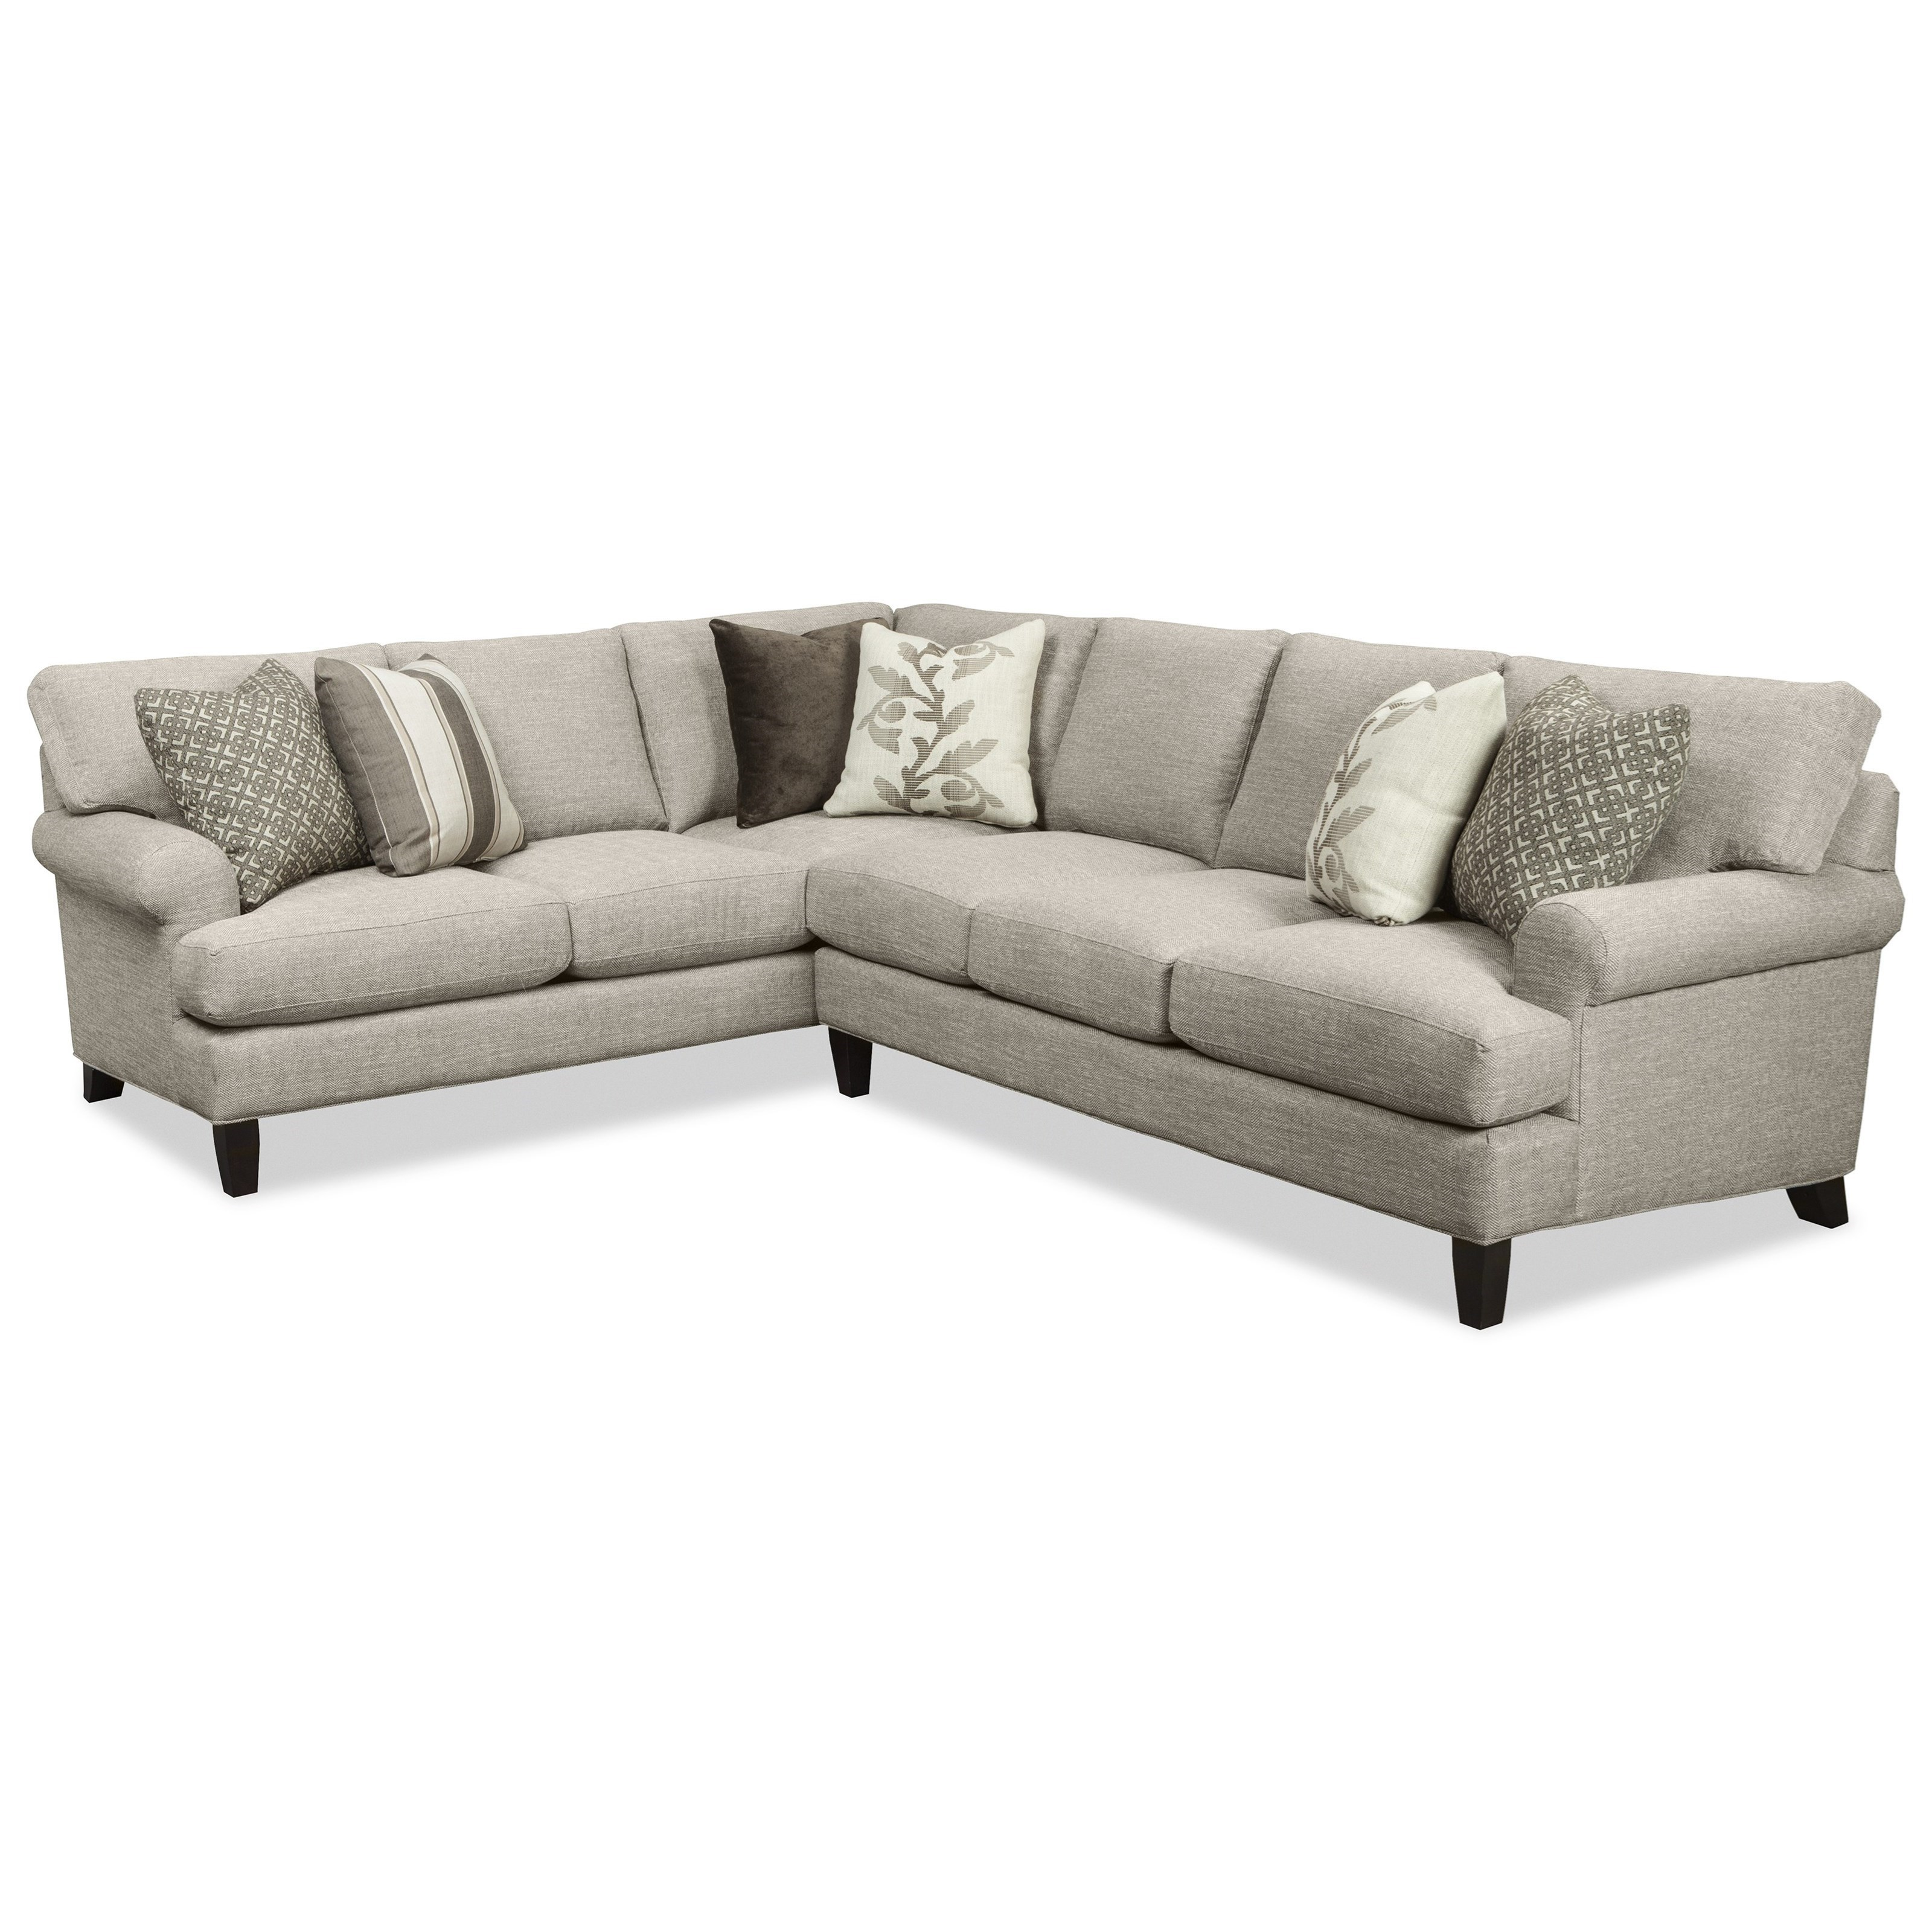 2 pc laf sectional sofa clayton motion leather and loveseat craftmaster 767350 767450 767550 767650 two piece